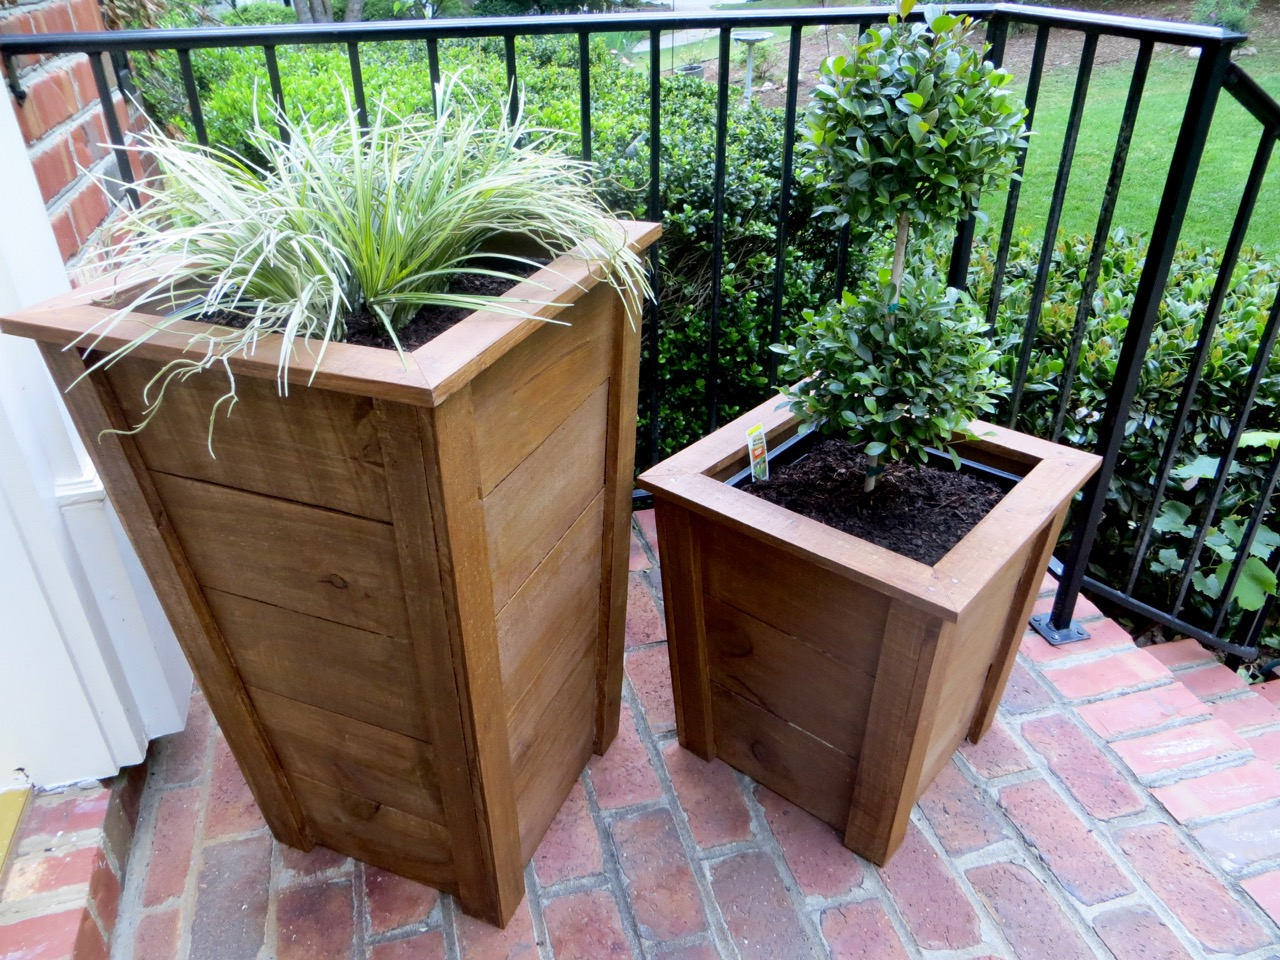 Simple Planters The Project Lady Diy Tutorial Decorative Wood Planter Boxes